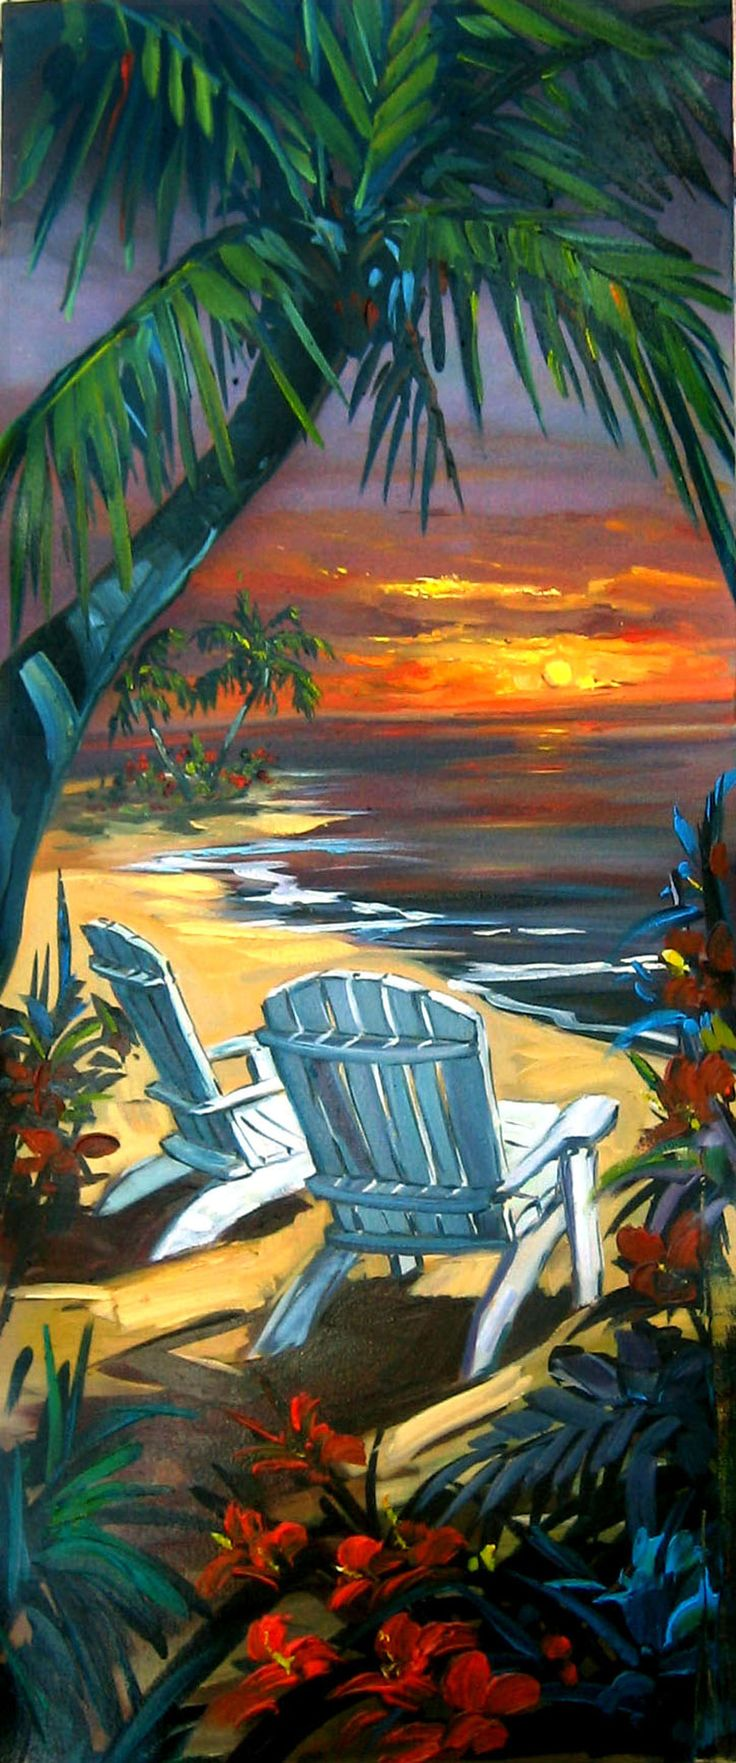 """A Love Story"", by Steve Barton #art #hawaii"